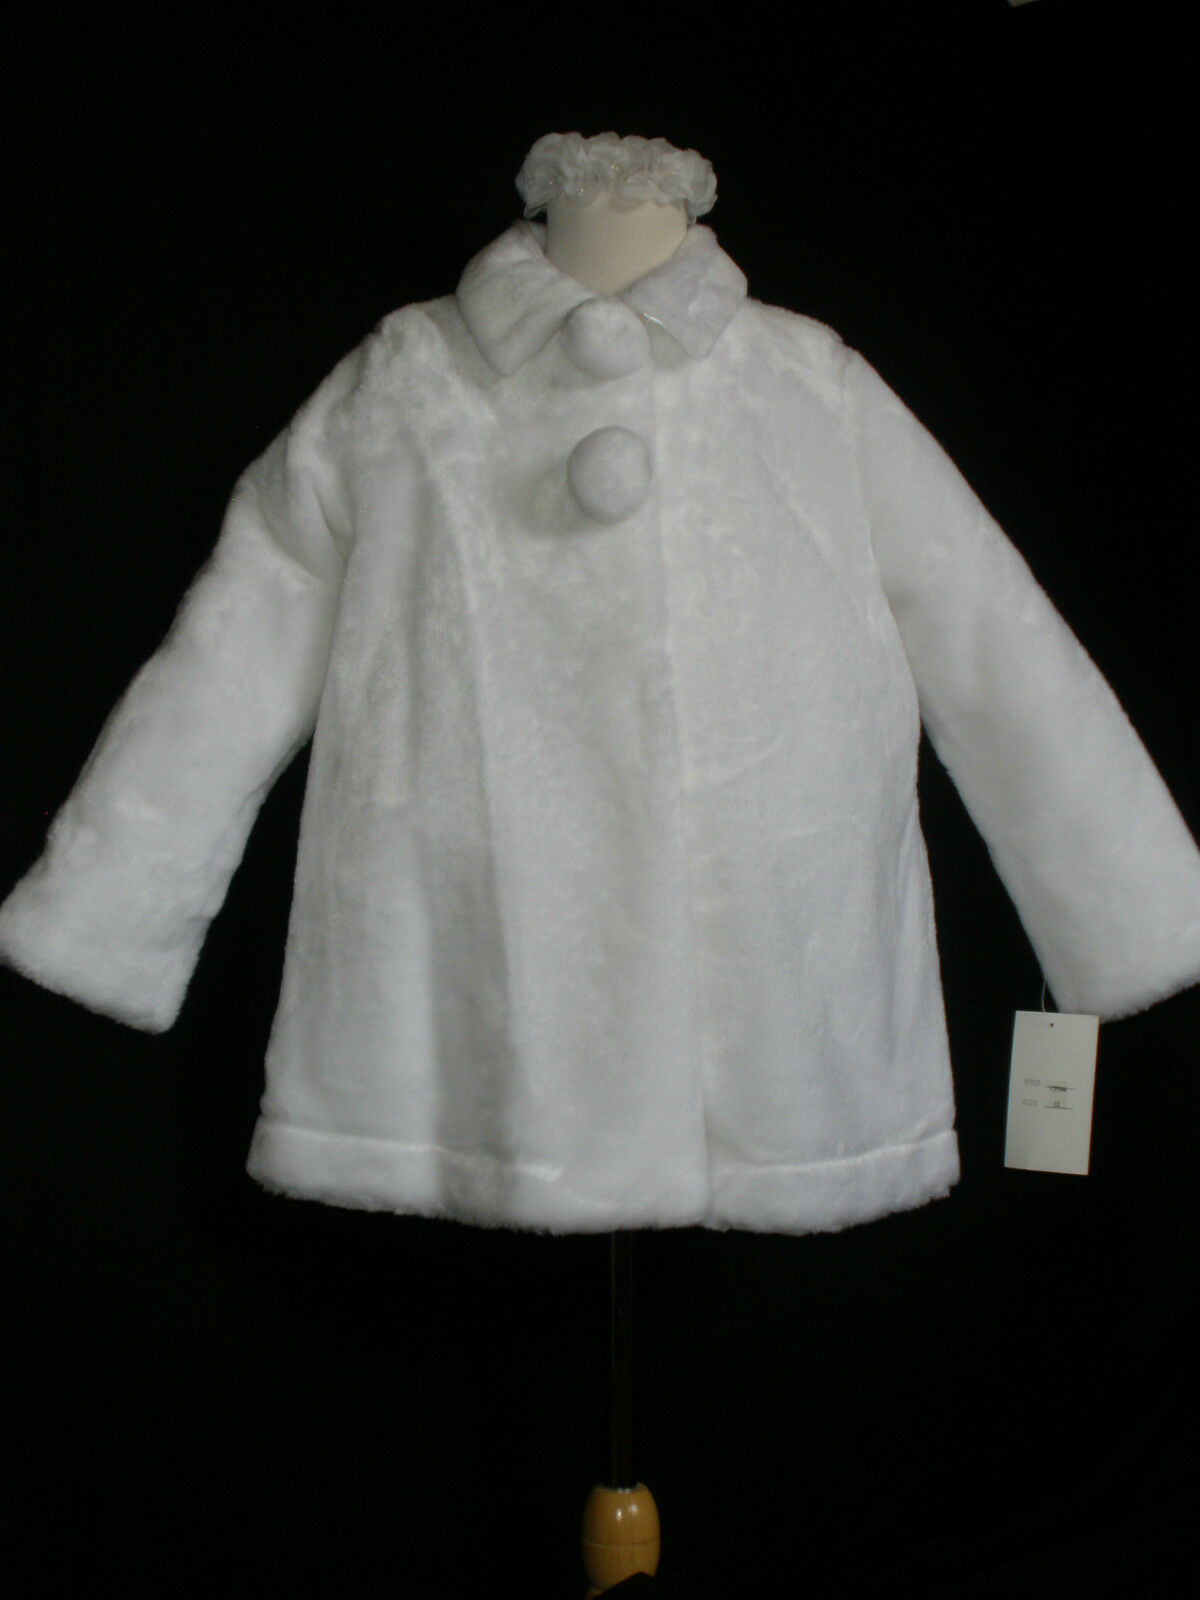 New Faux Fur Jacket for Wedding, Pageant Foraml Events white size 10,12